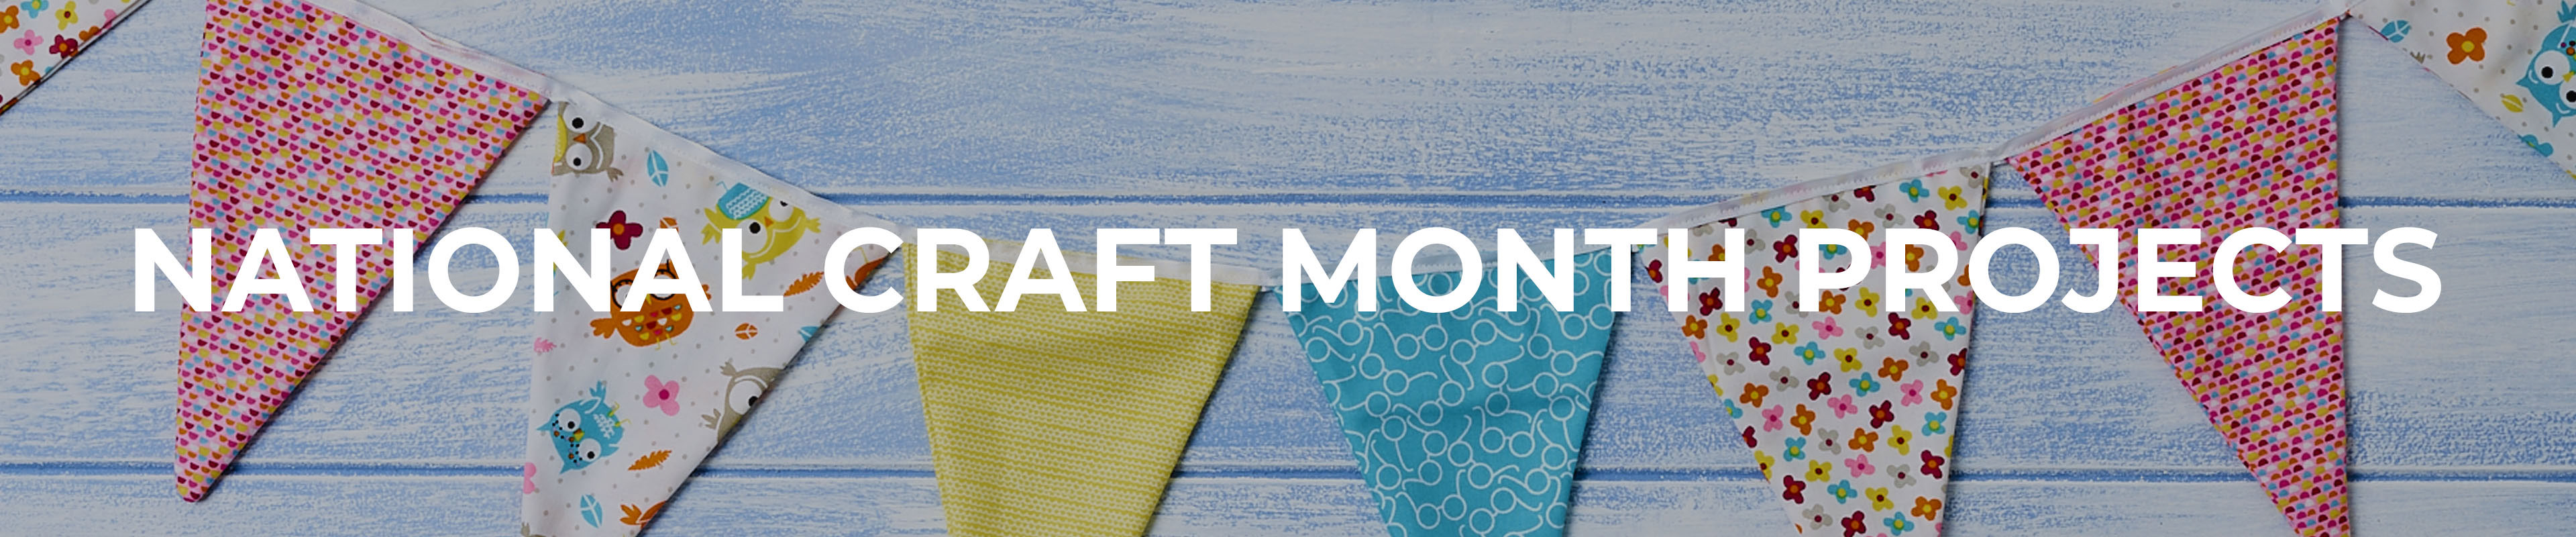 National Craft Month Projects